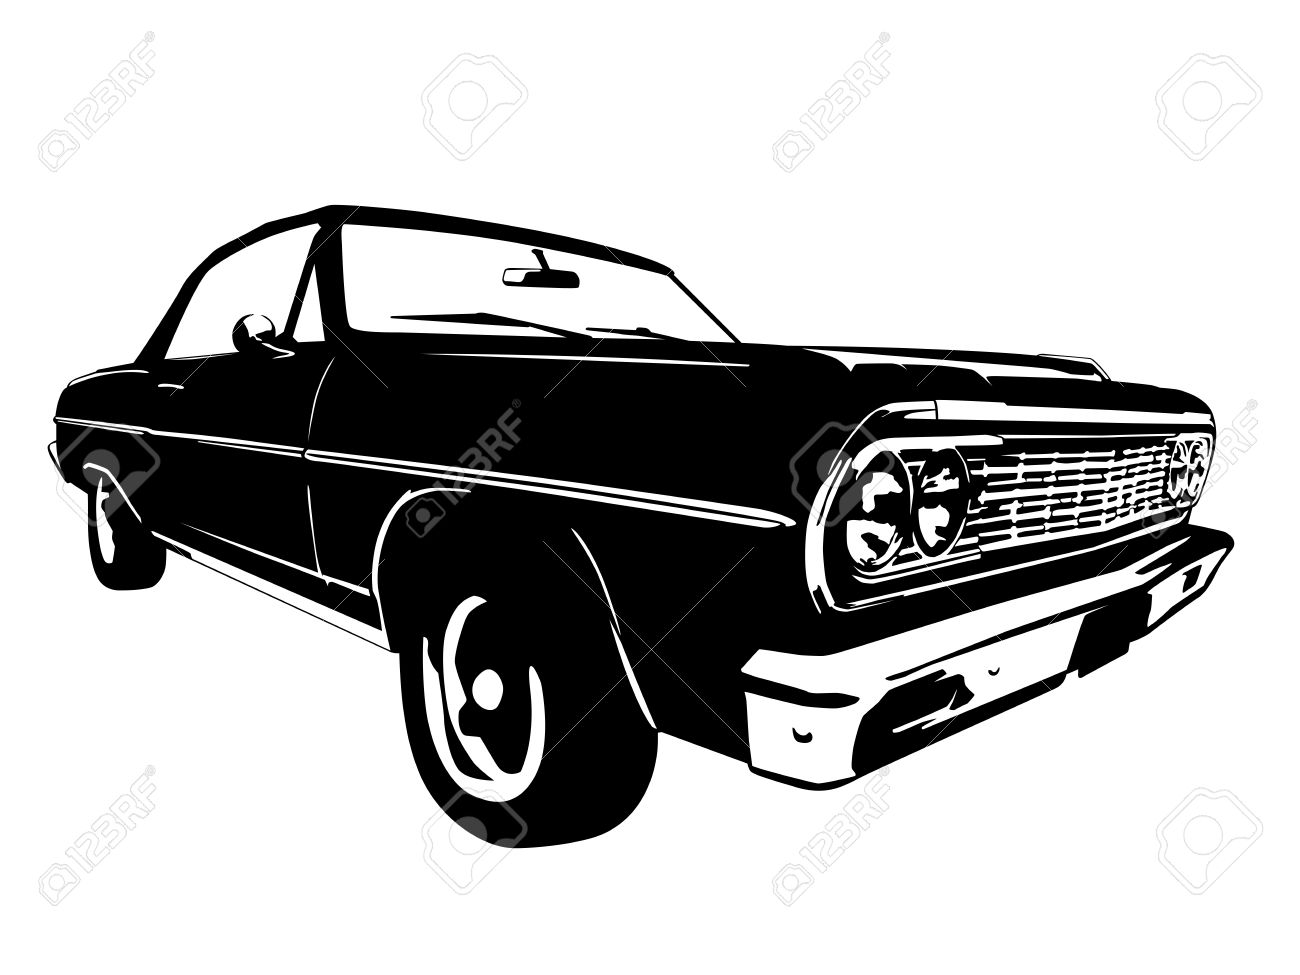 Vintage American Muscle Car Silhouette Royalty Free Cliparts